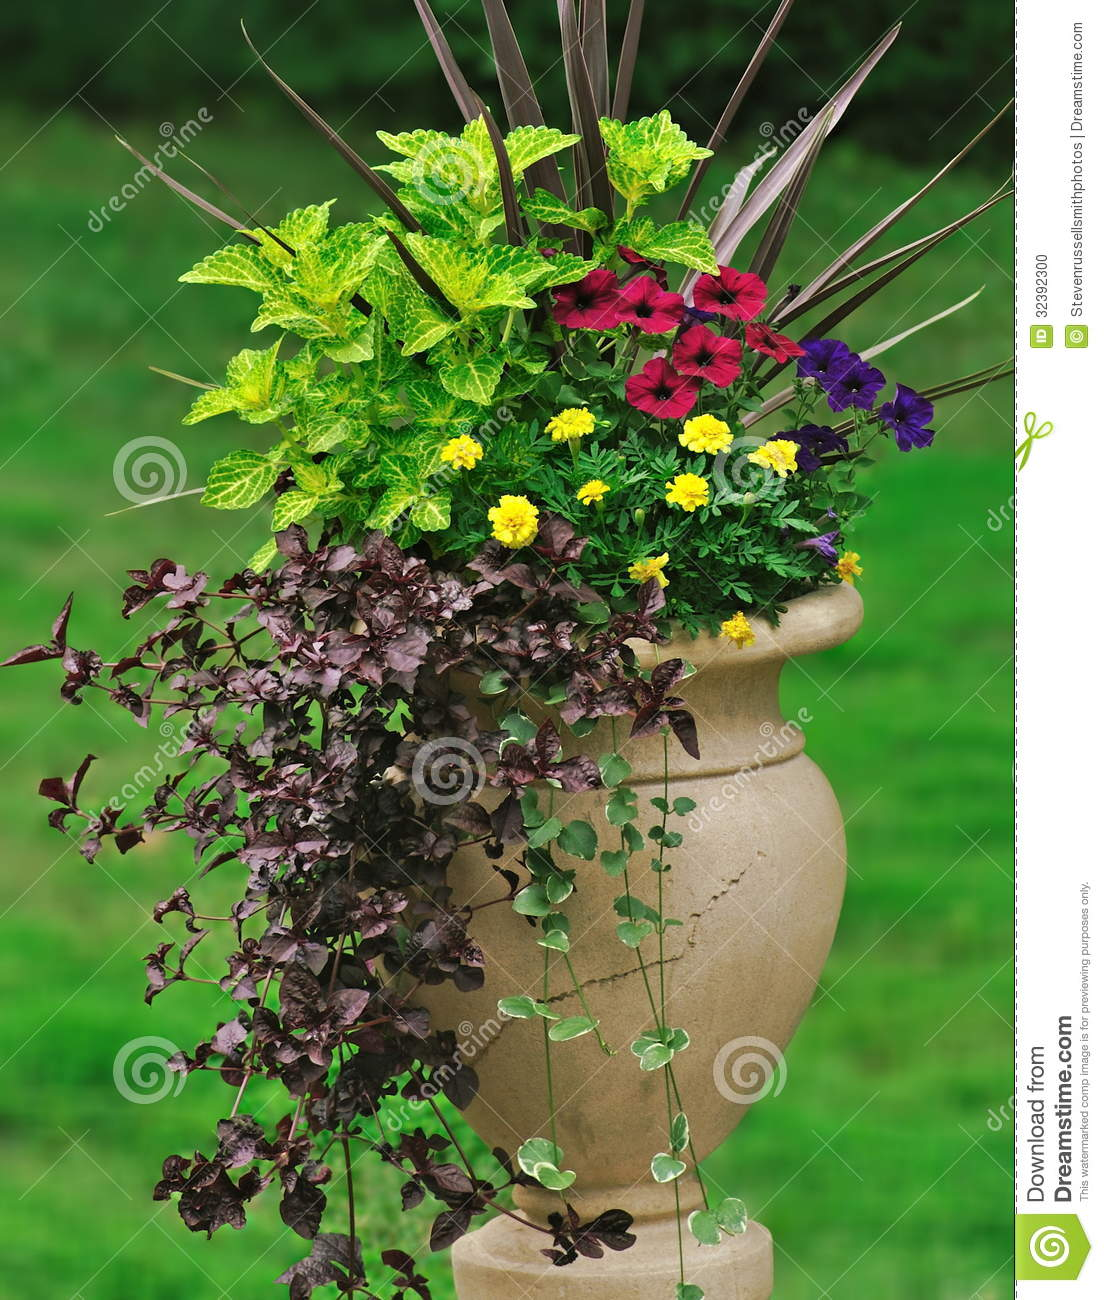 Container Gardening Stock Photo Image 32392300